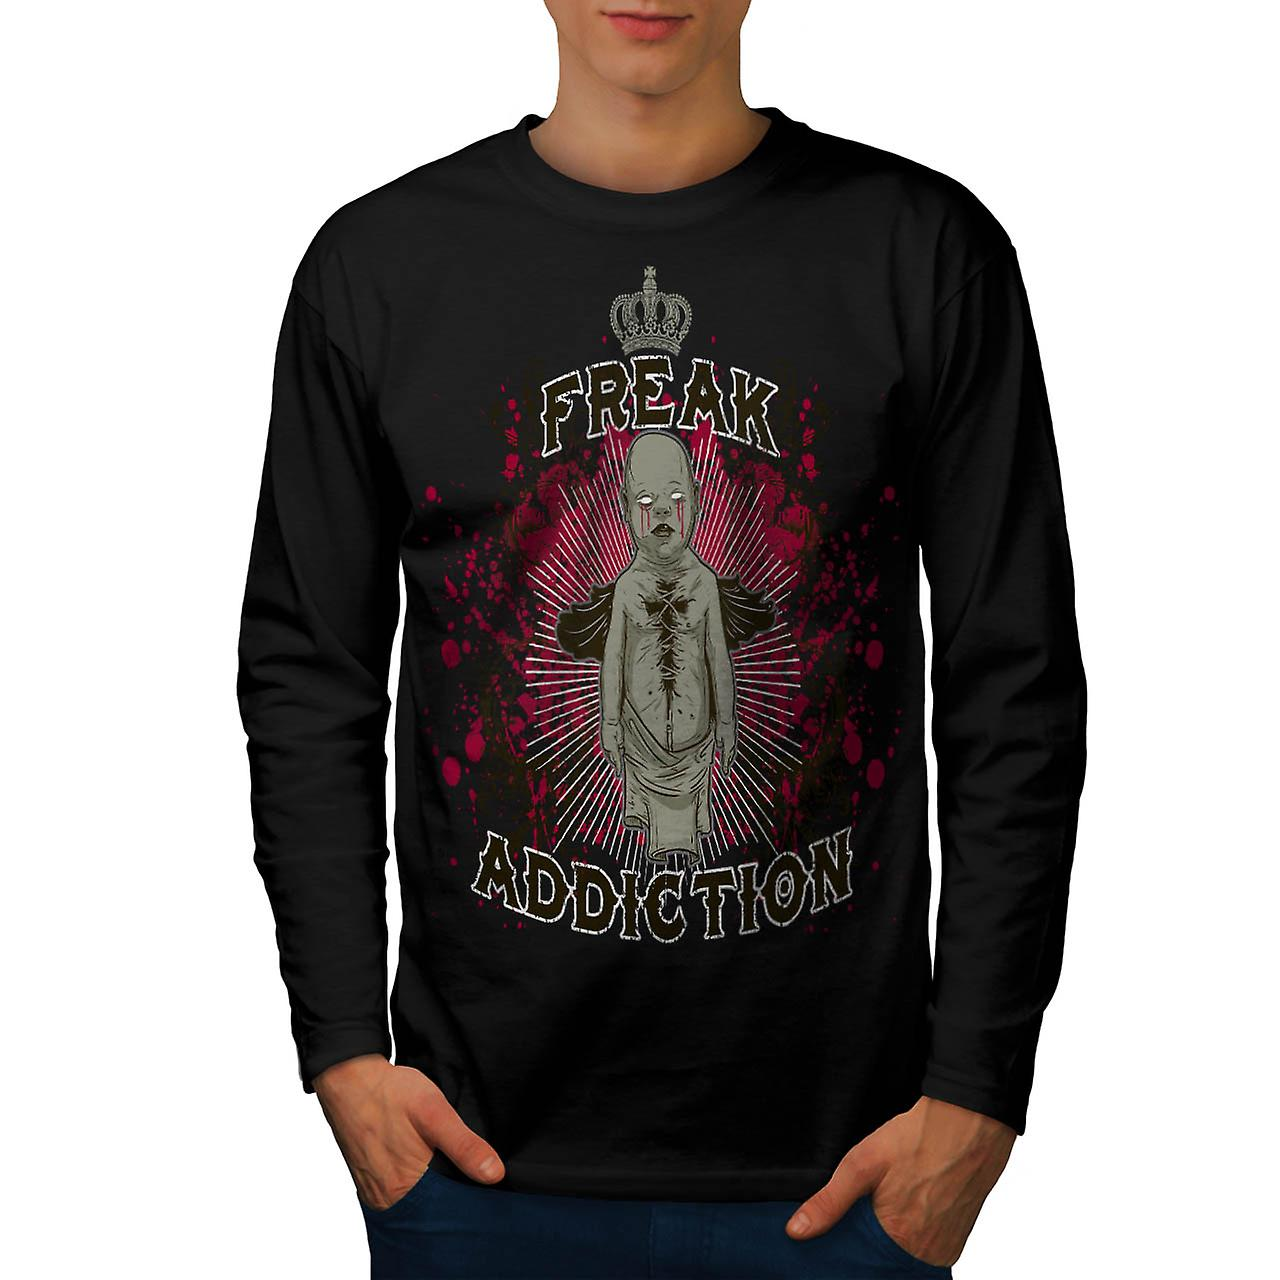 Freak Royal dipendenza fantasma bambino nero t-shirt manica lunga | Wellcoda